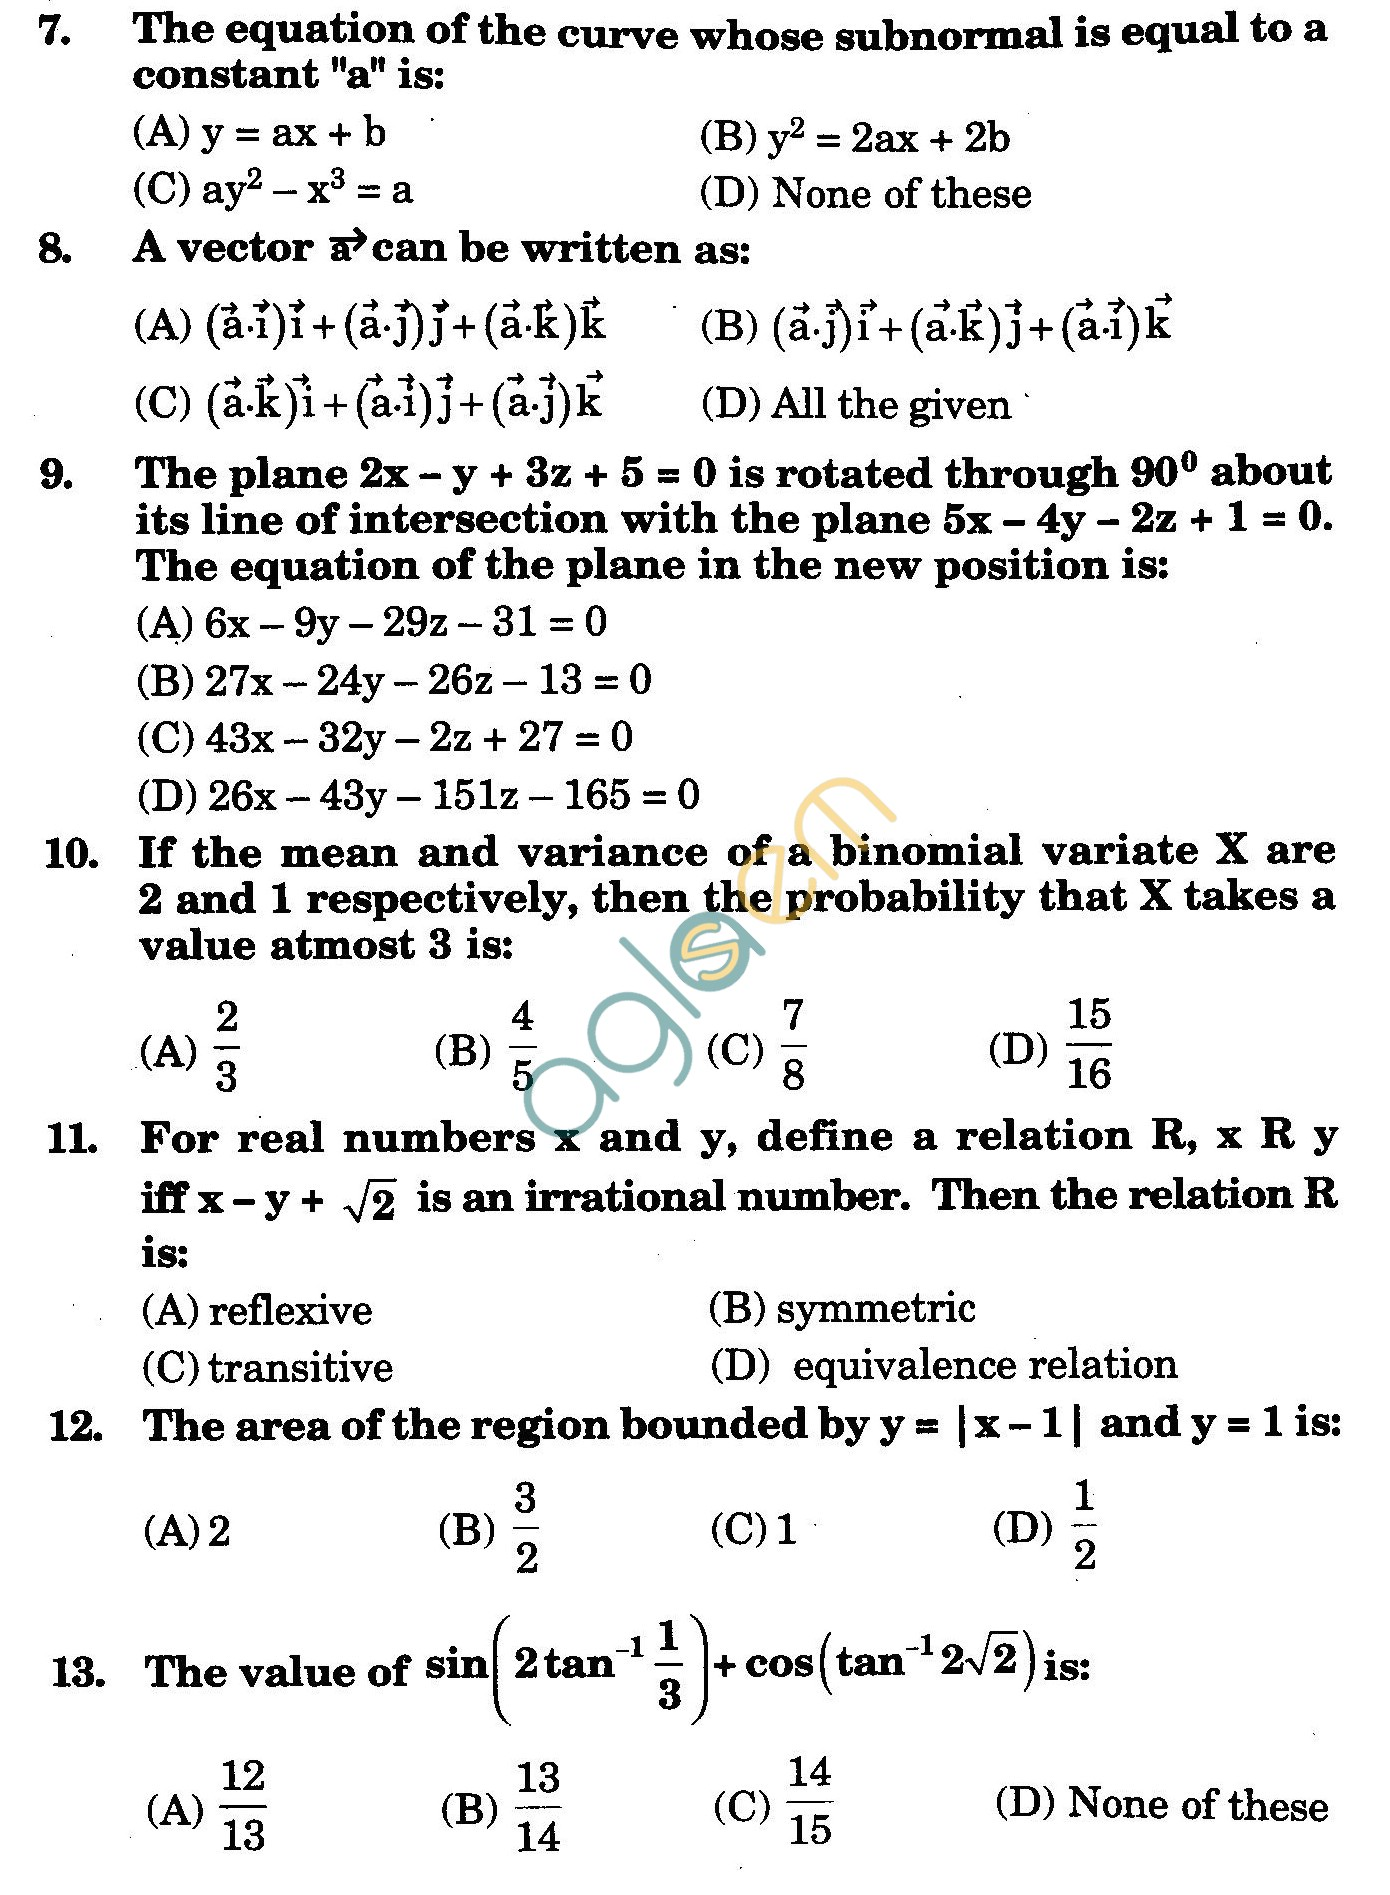 NSTSE 2009 Class XII PCM Question Paper with Answers - Mathematics